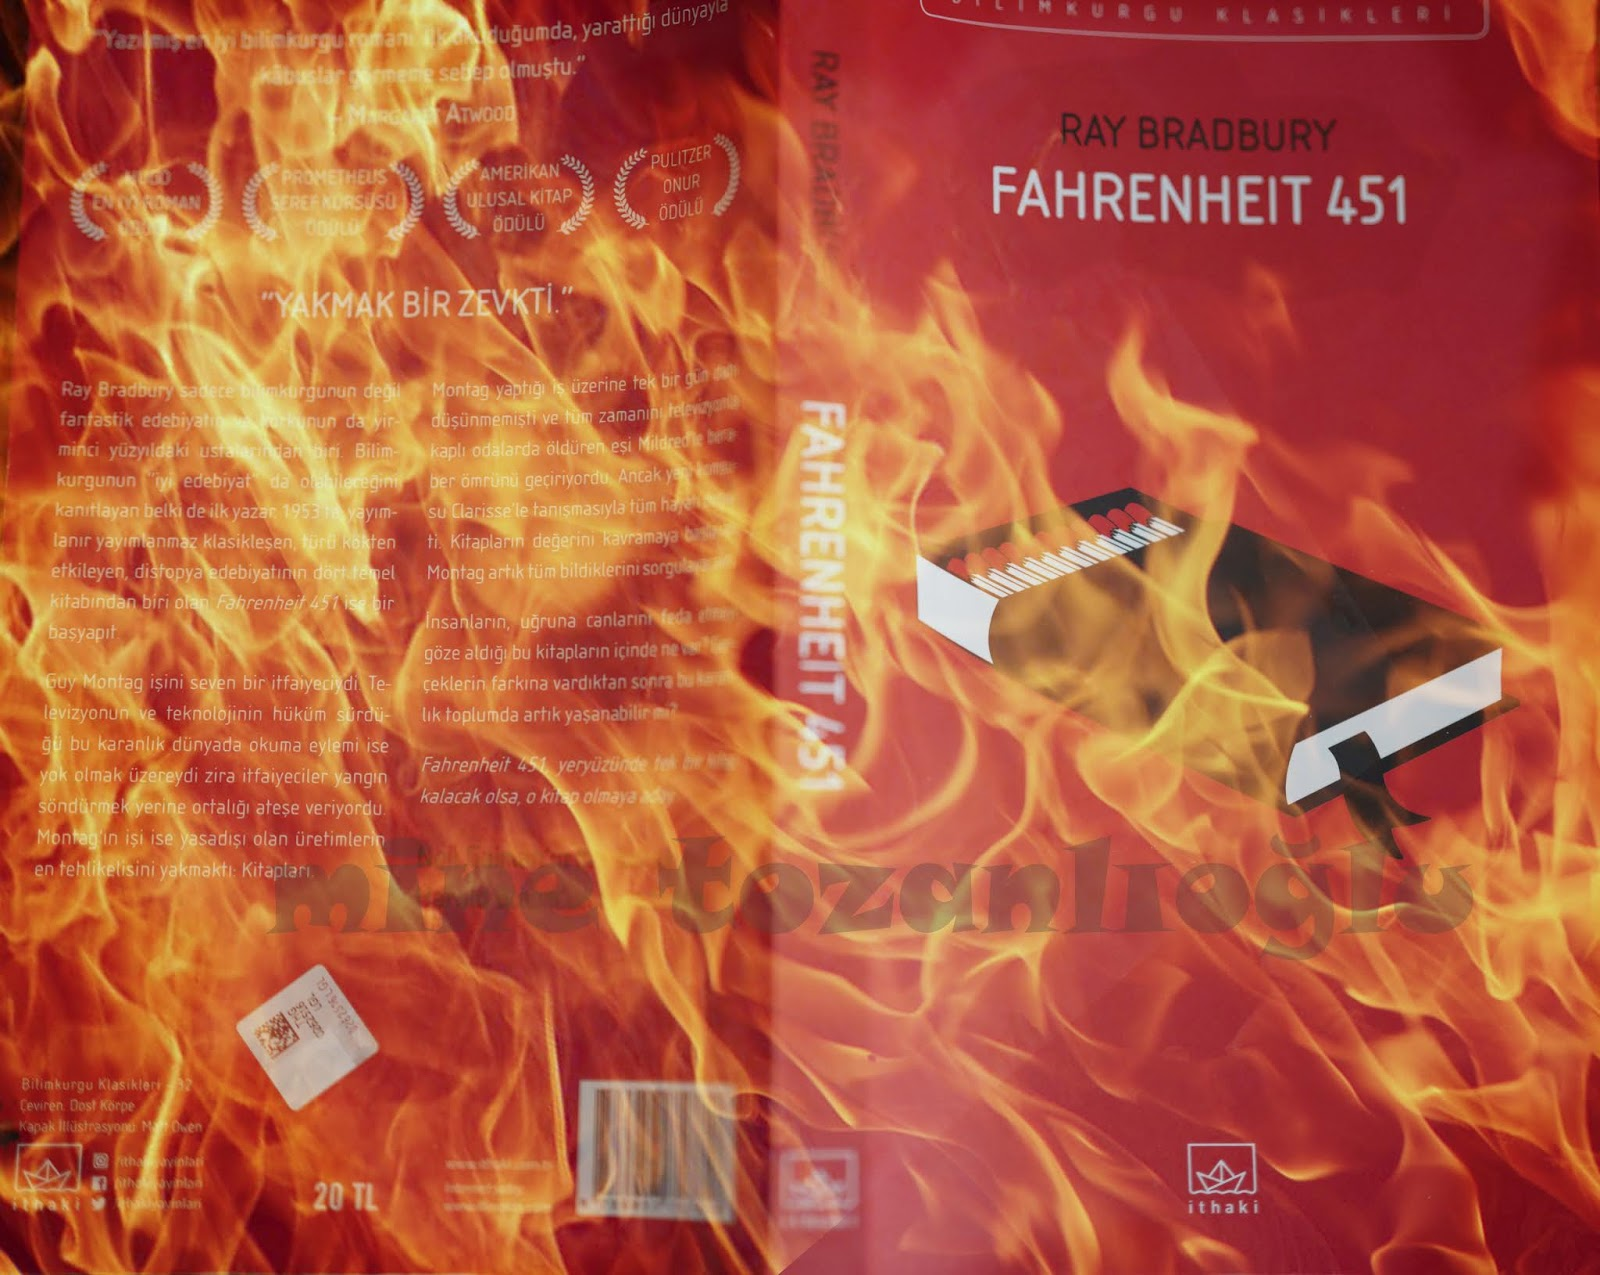 a summary of fahrenheit 451 by ray bradbury Reading assignment - fahrenheit 451 by ray bradbury fahrenheit 451 - the temperature at which book paper catches fire, and burns i ray bradbury, fahrenheit 451 - 50th anniversary edition, 2001 ii r bradbury, quoted by kingsley amis in new maps of hell: a survey of science fiction.